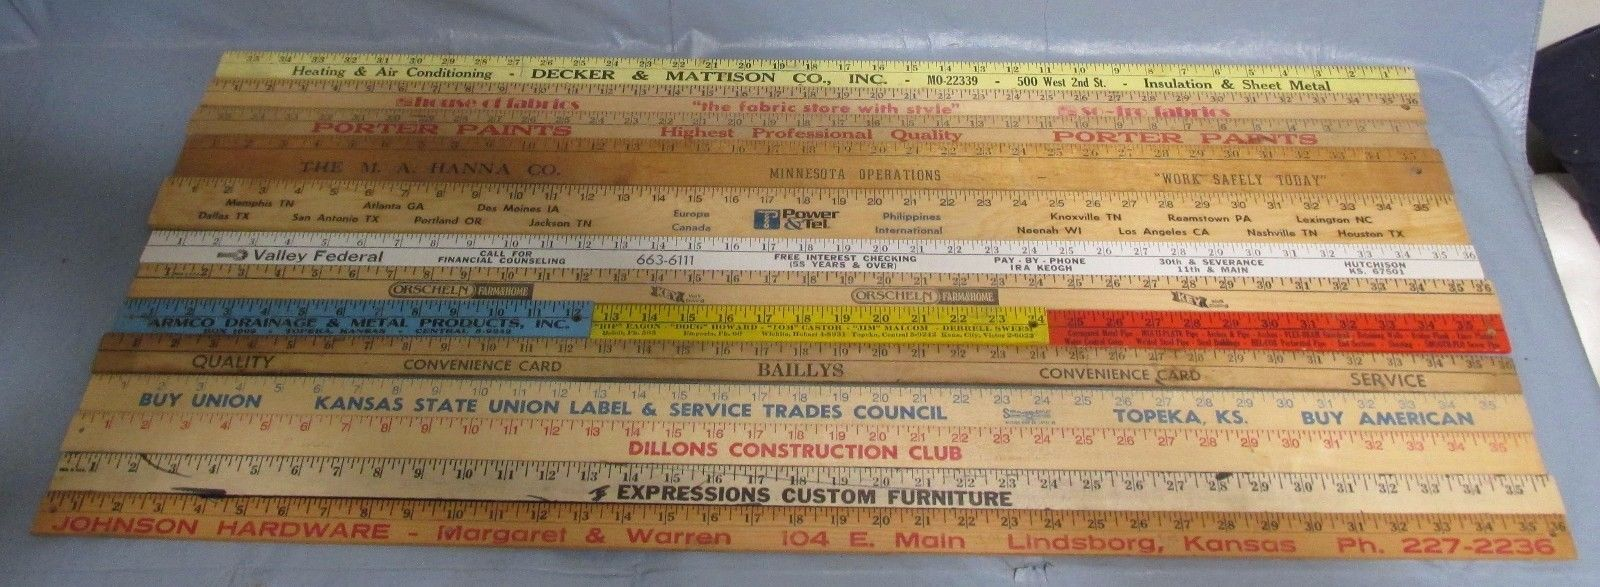 13 VINTAGE Wood Yardsticks Advertising Sheet Metal, Lumber, Hardware,Old Ph#s